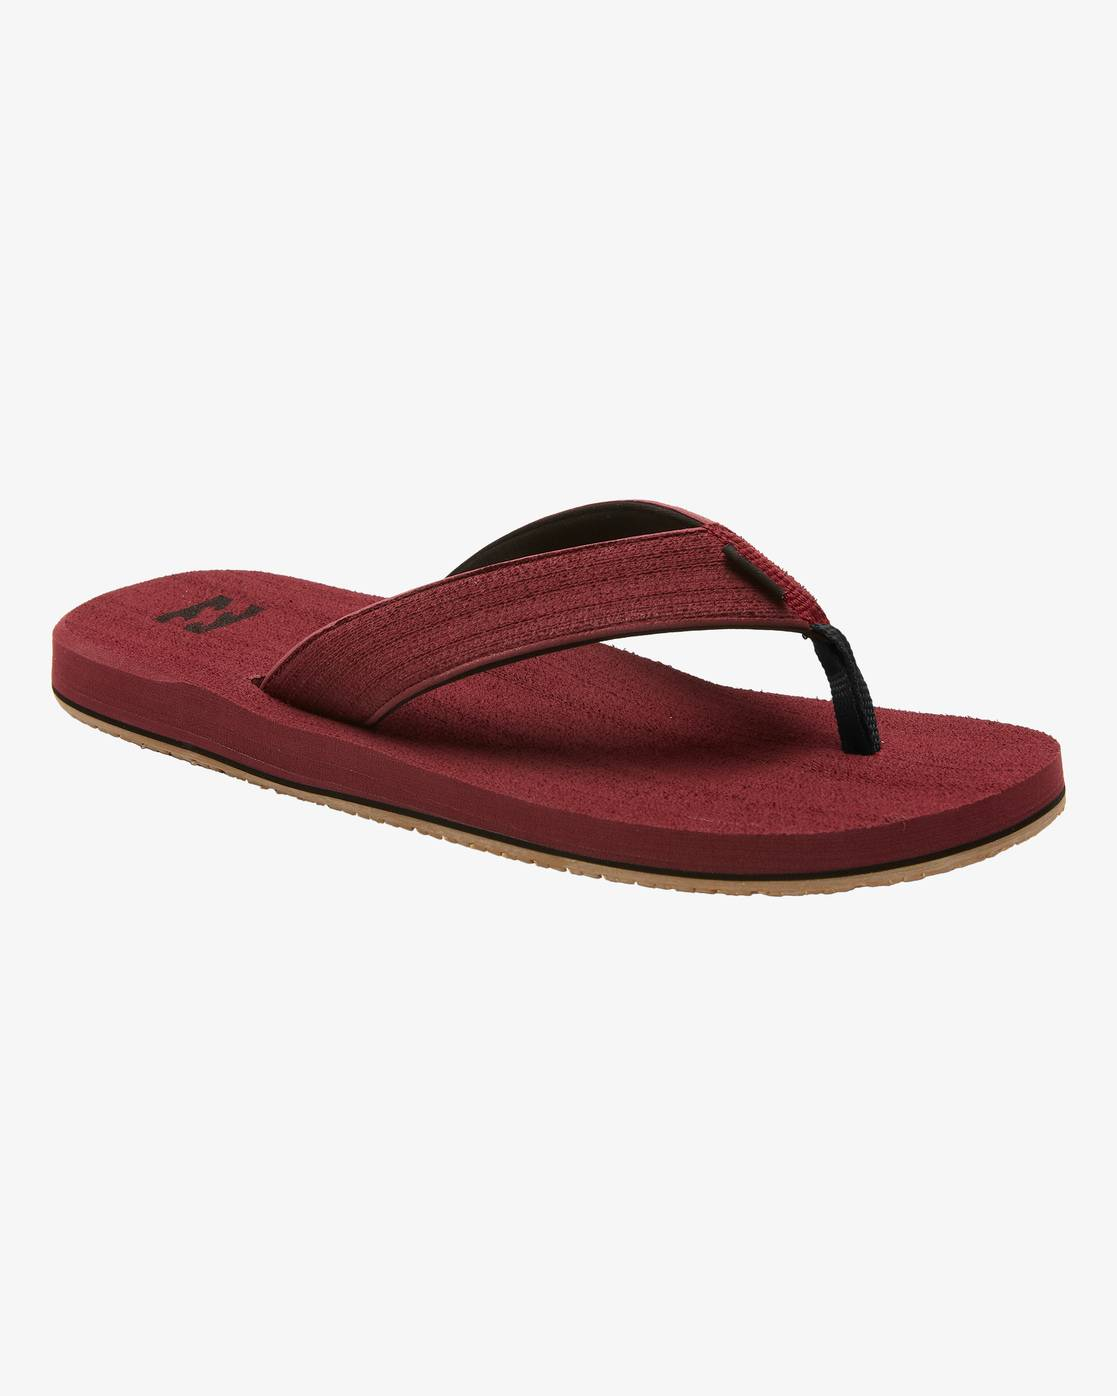 Billabong ALL DAY IMPACT BRUSHED  - Red - Size: 9